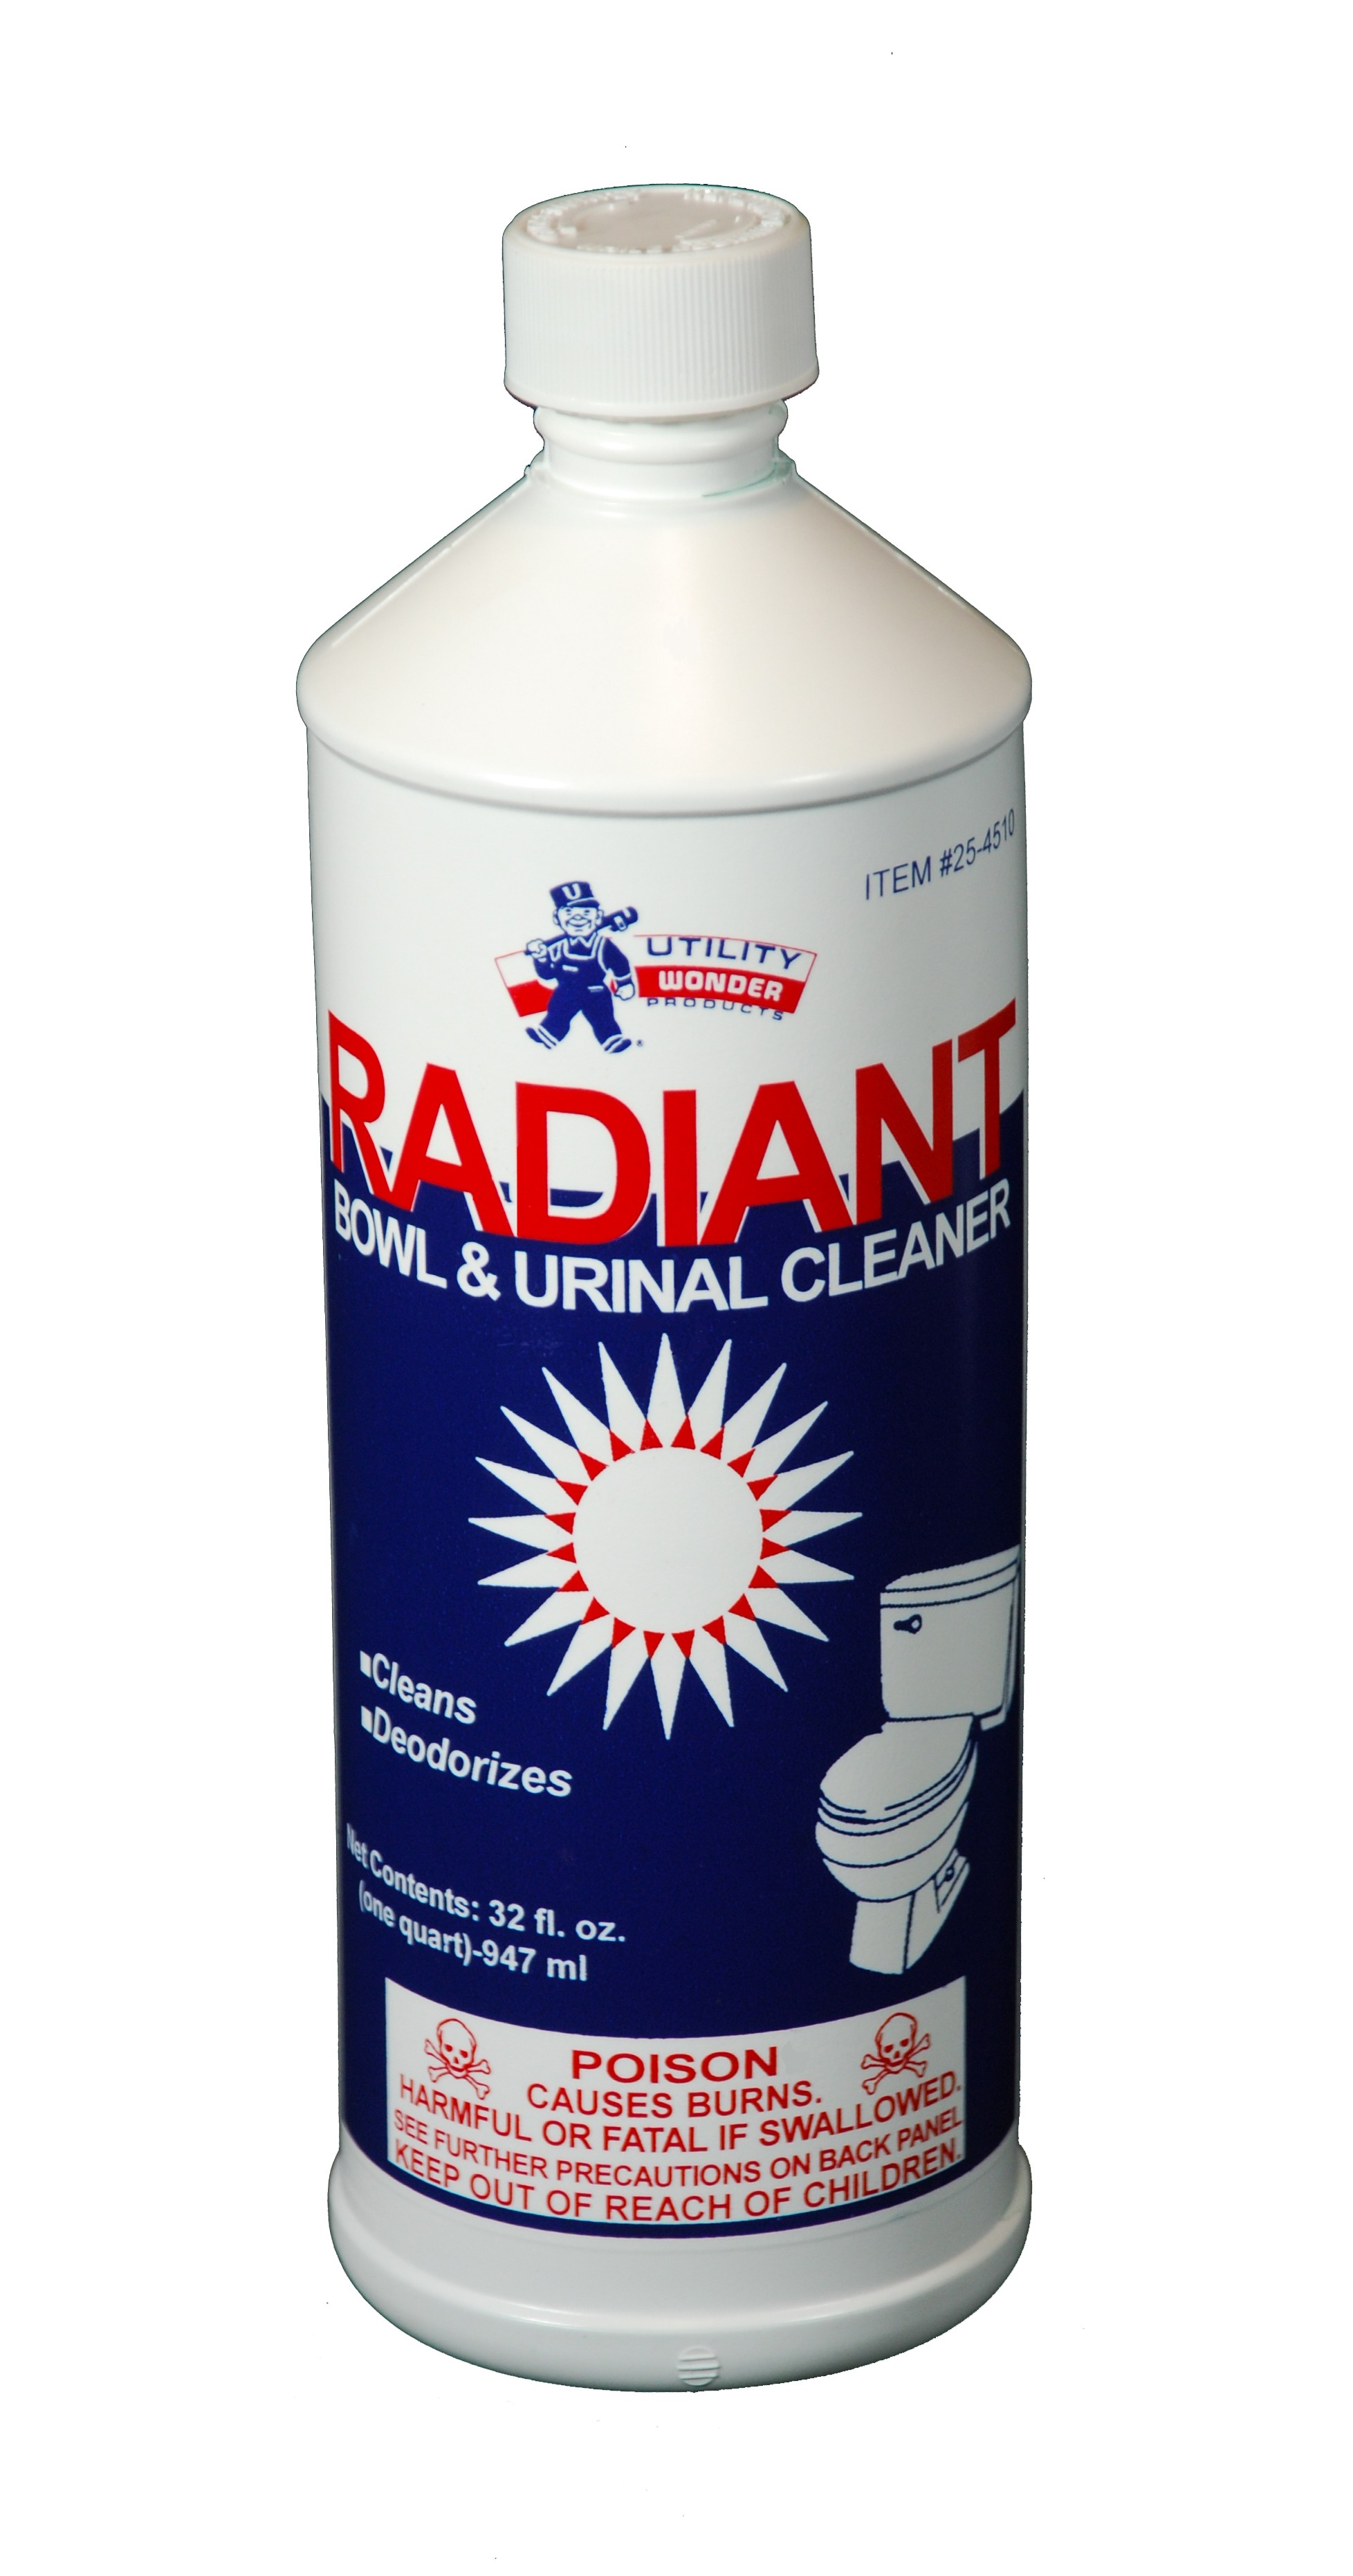 RADIANT LIQUID BOWL CLEANER